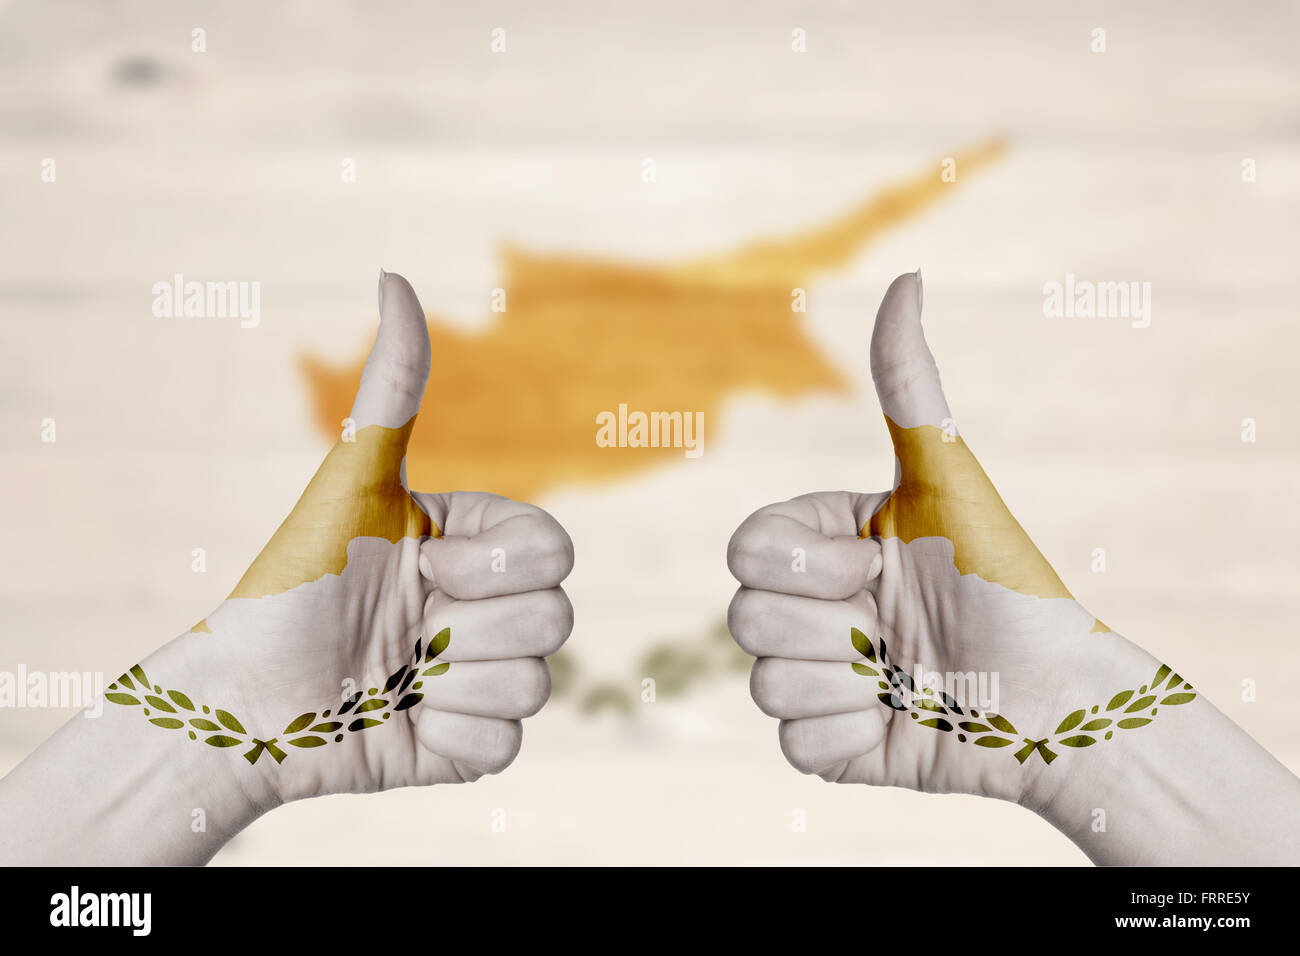 Cyprus flag painted on female hands thumbs up with blurry wooden background - Stock Image